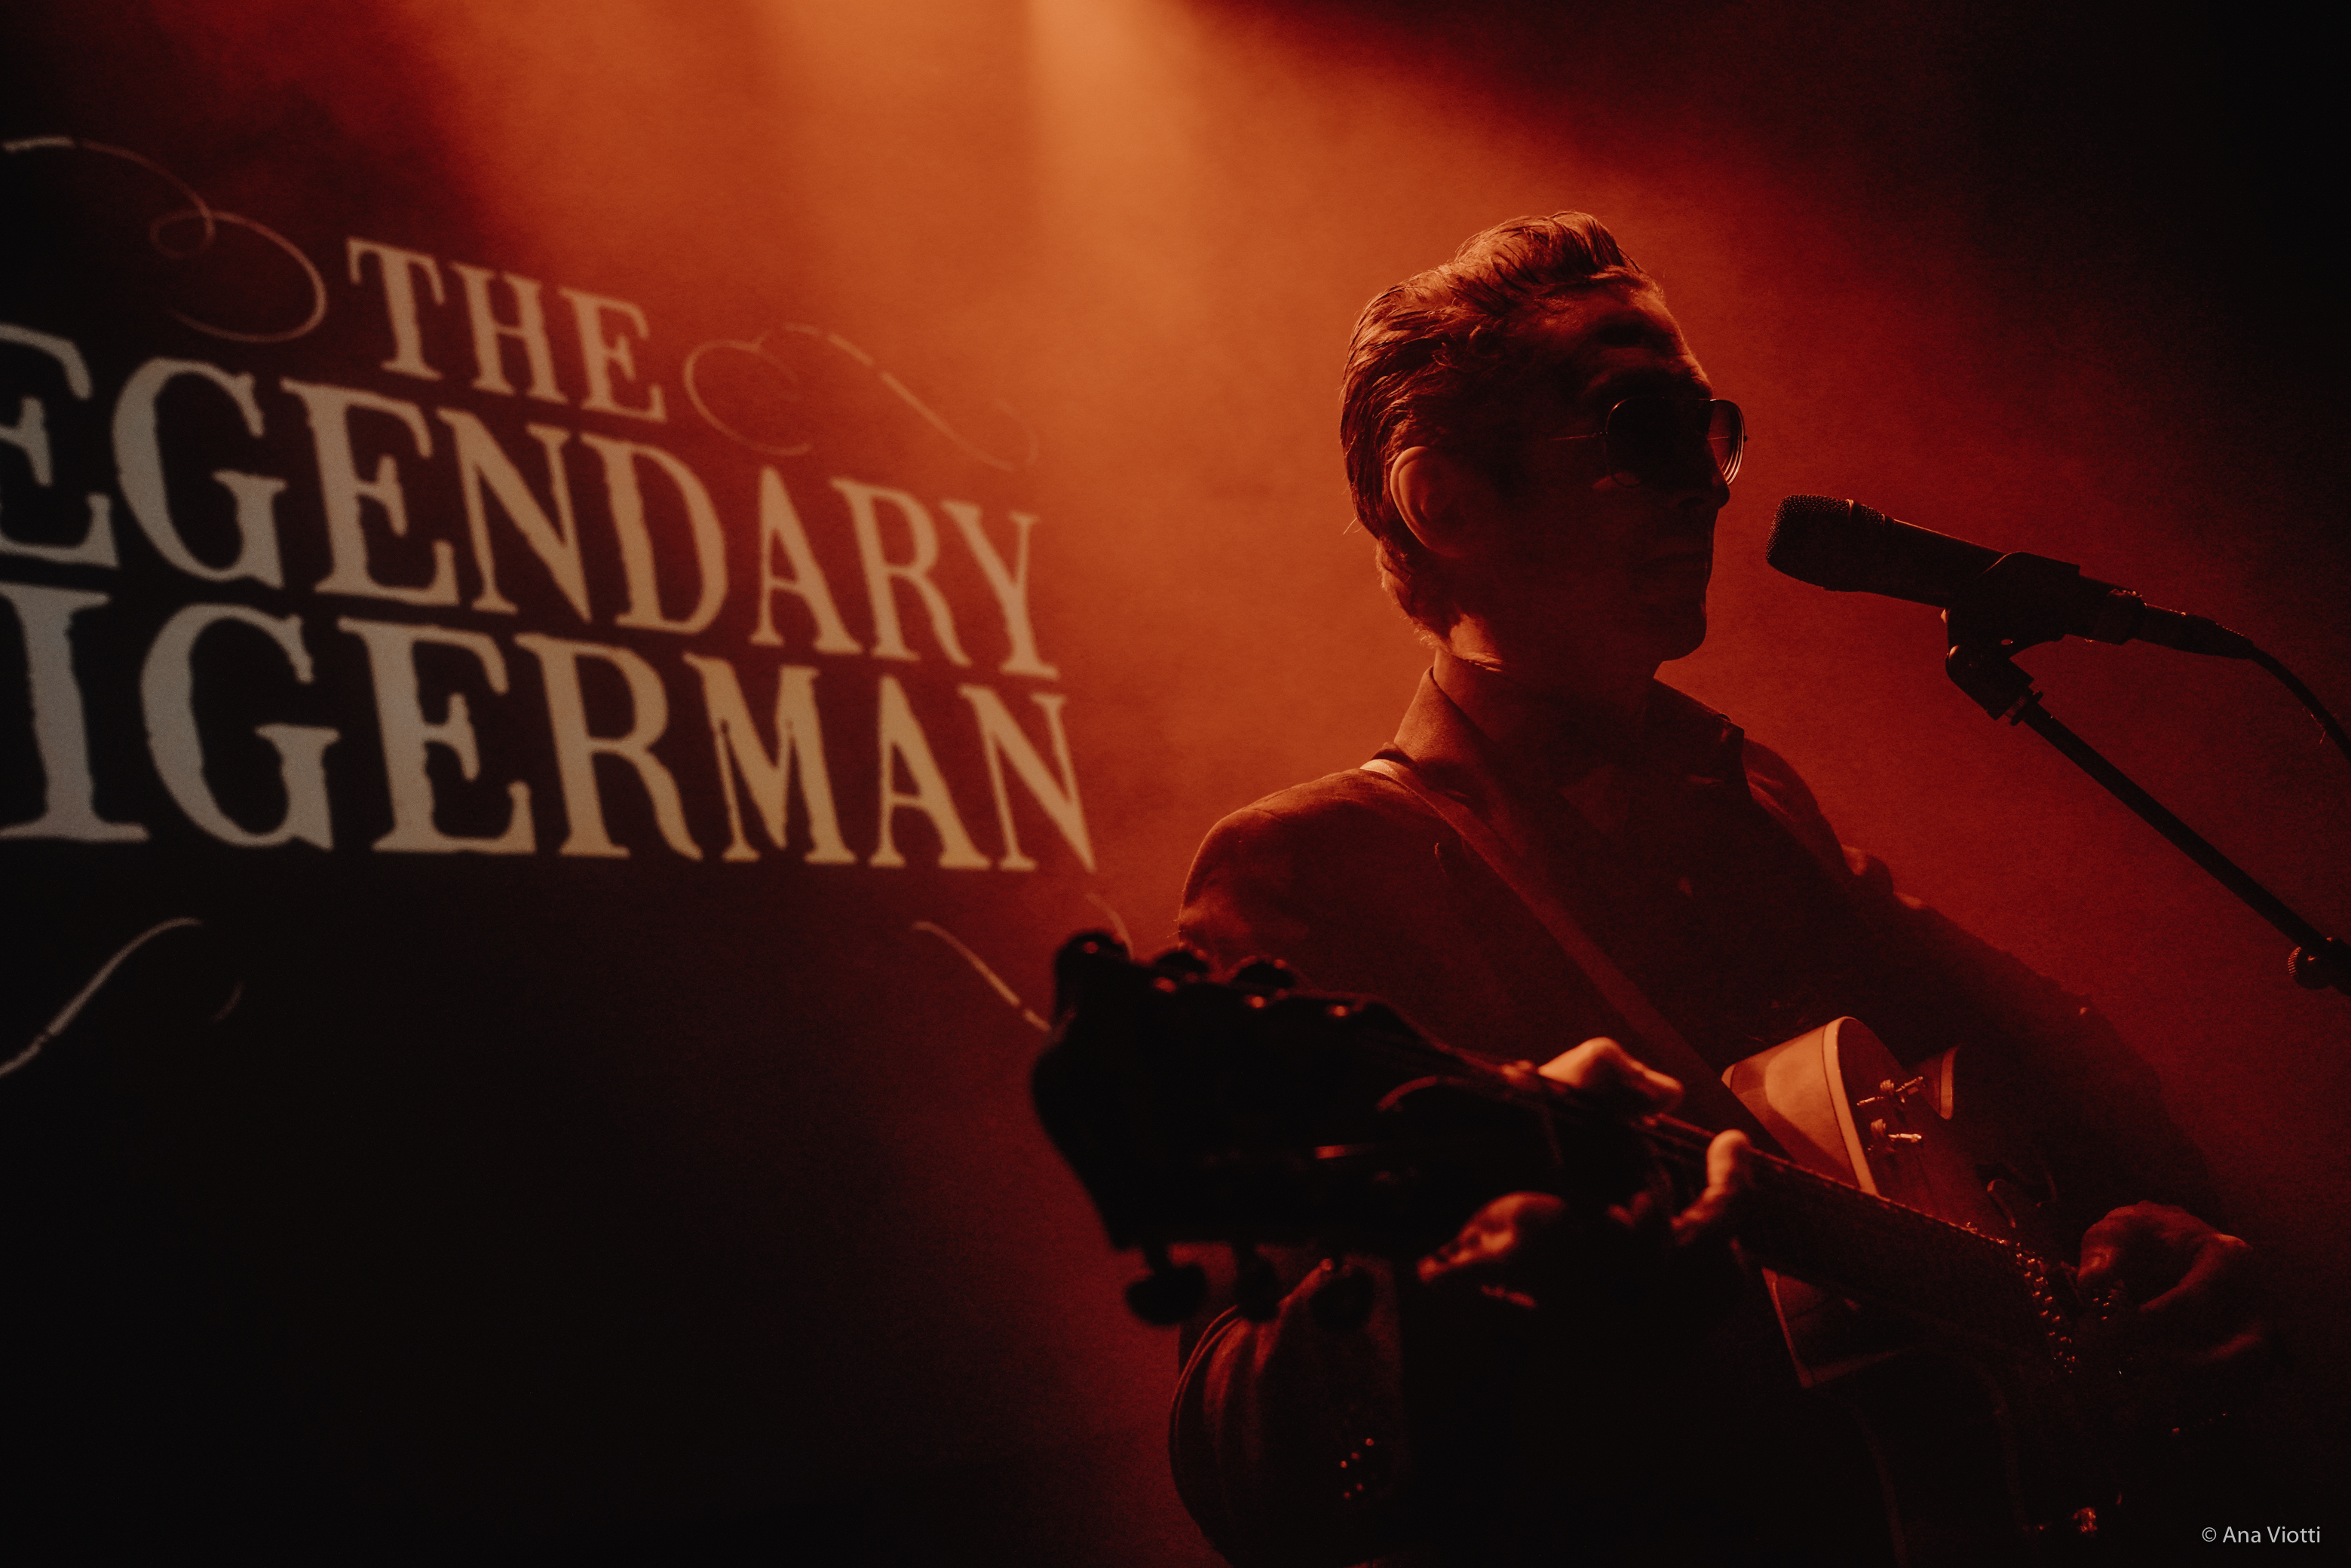 The Legendary Tigerman | One man Band